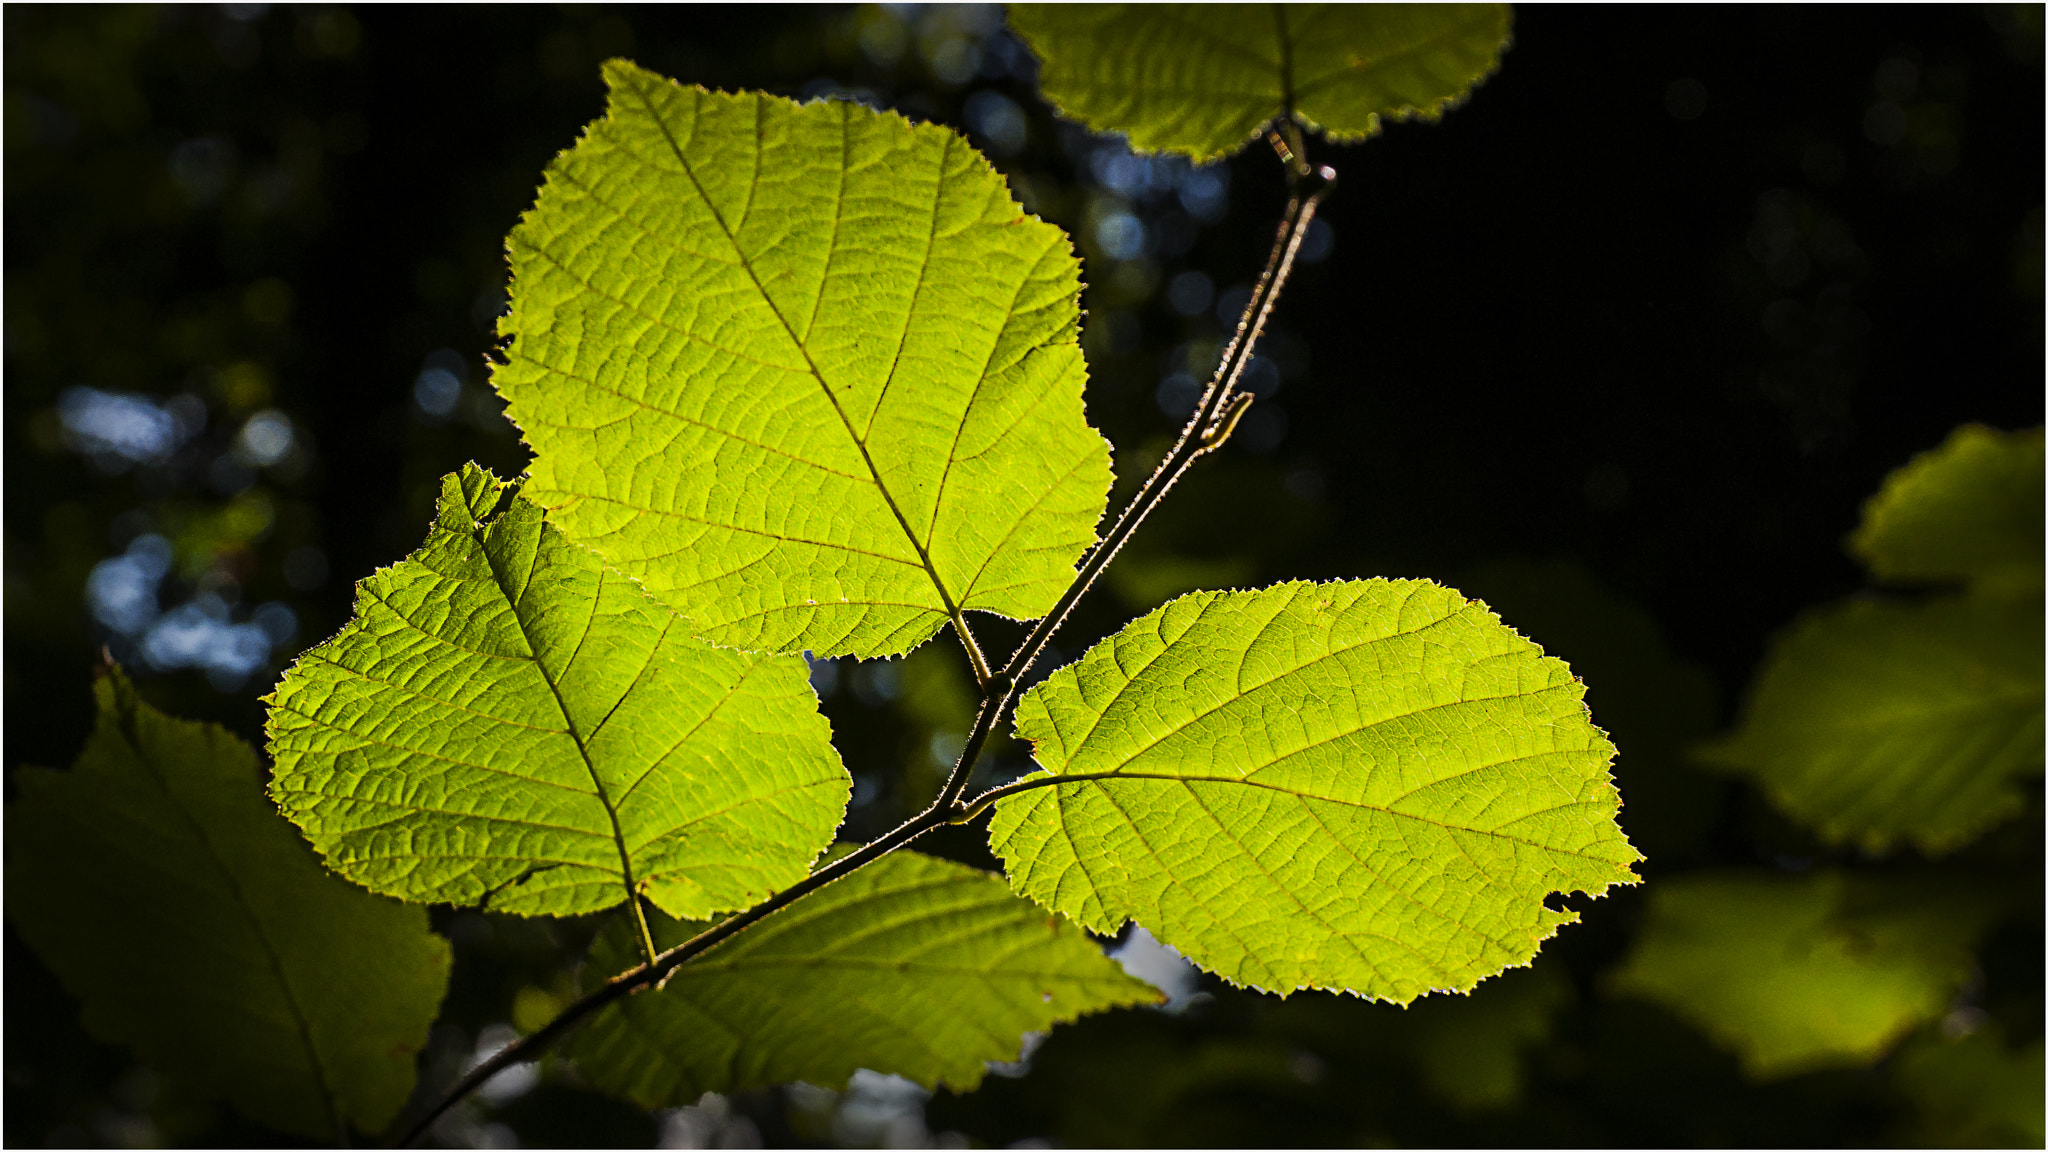 Photograph Sunlit Leaves by Mark Shoesmith on 500px